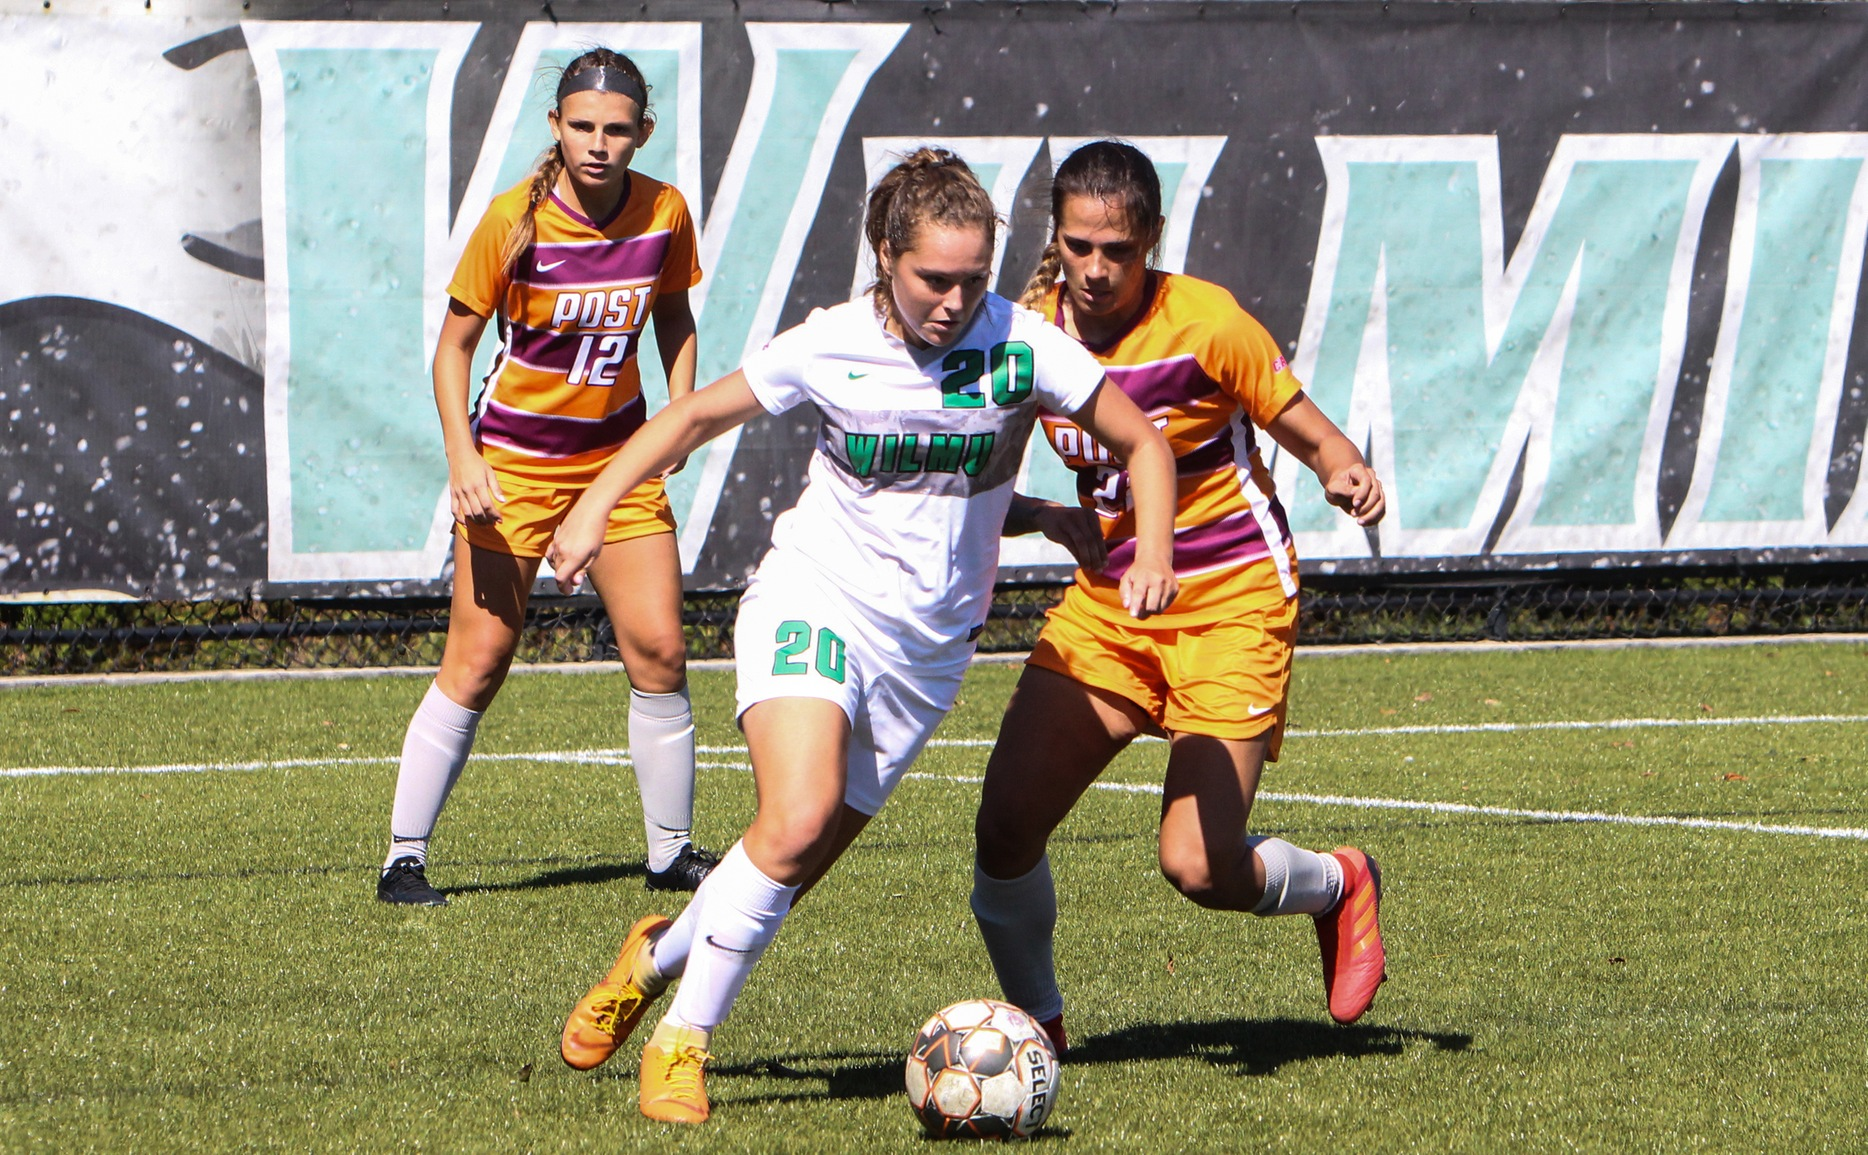 Wilmington University Samantha Emma (20) battles against Post University players during their NCAA soccer match at the Wilmington University sports complex in Newark, Delaware October 5, 2019 Photo by Julius Mickens.